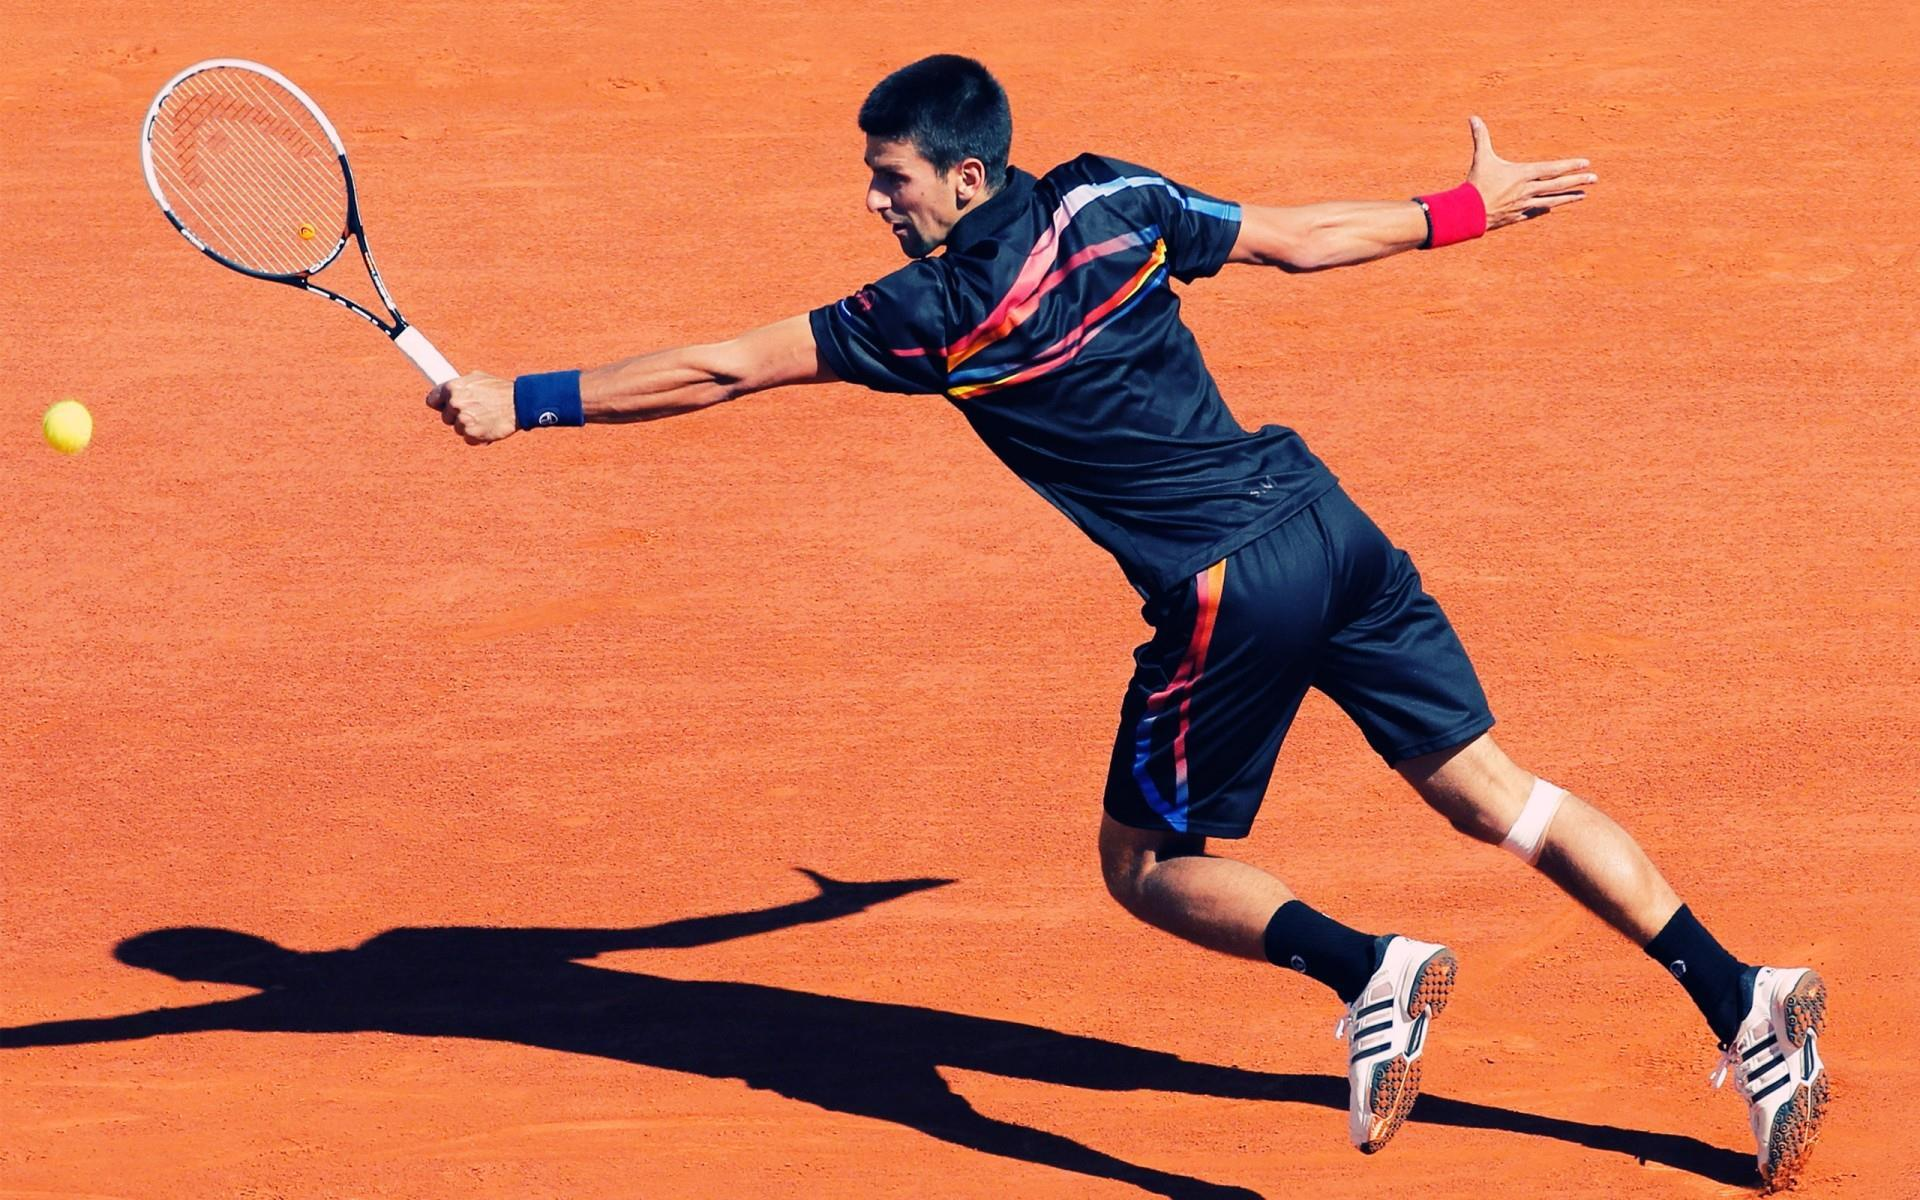 novak-djokovic-2014-wallpaper_fond-ecran